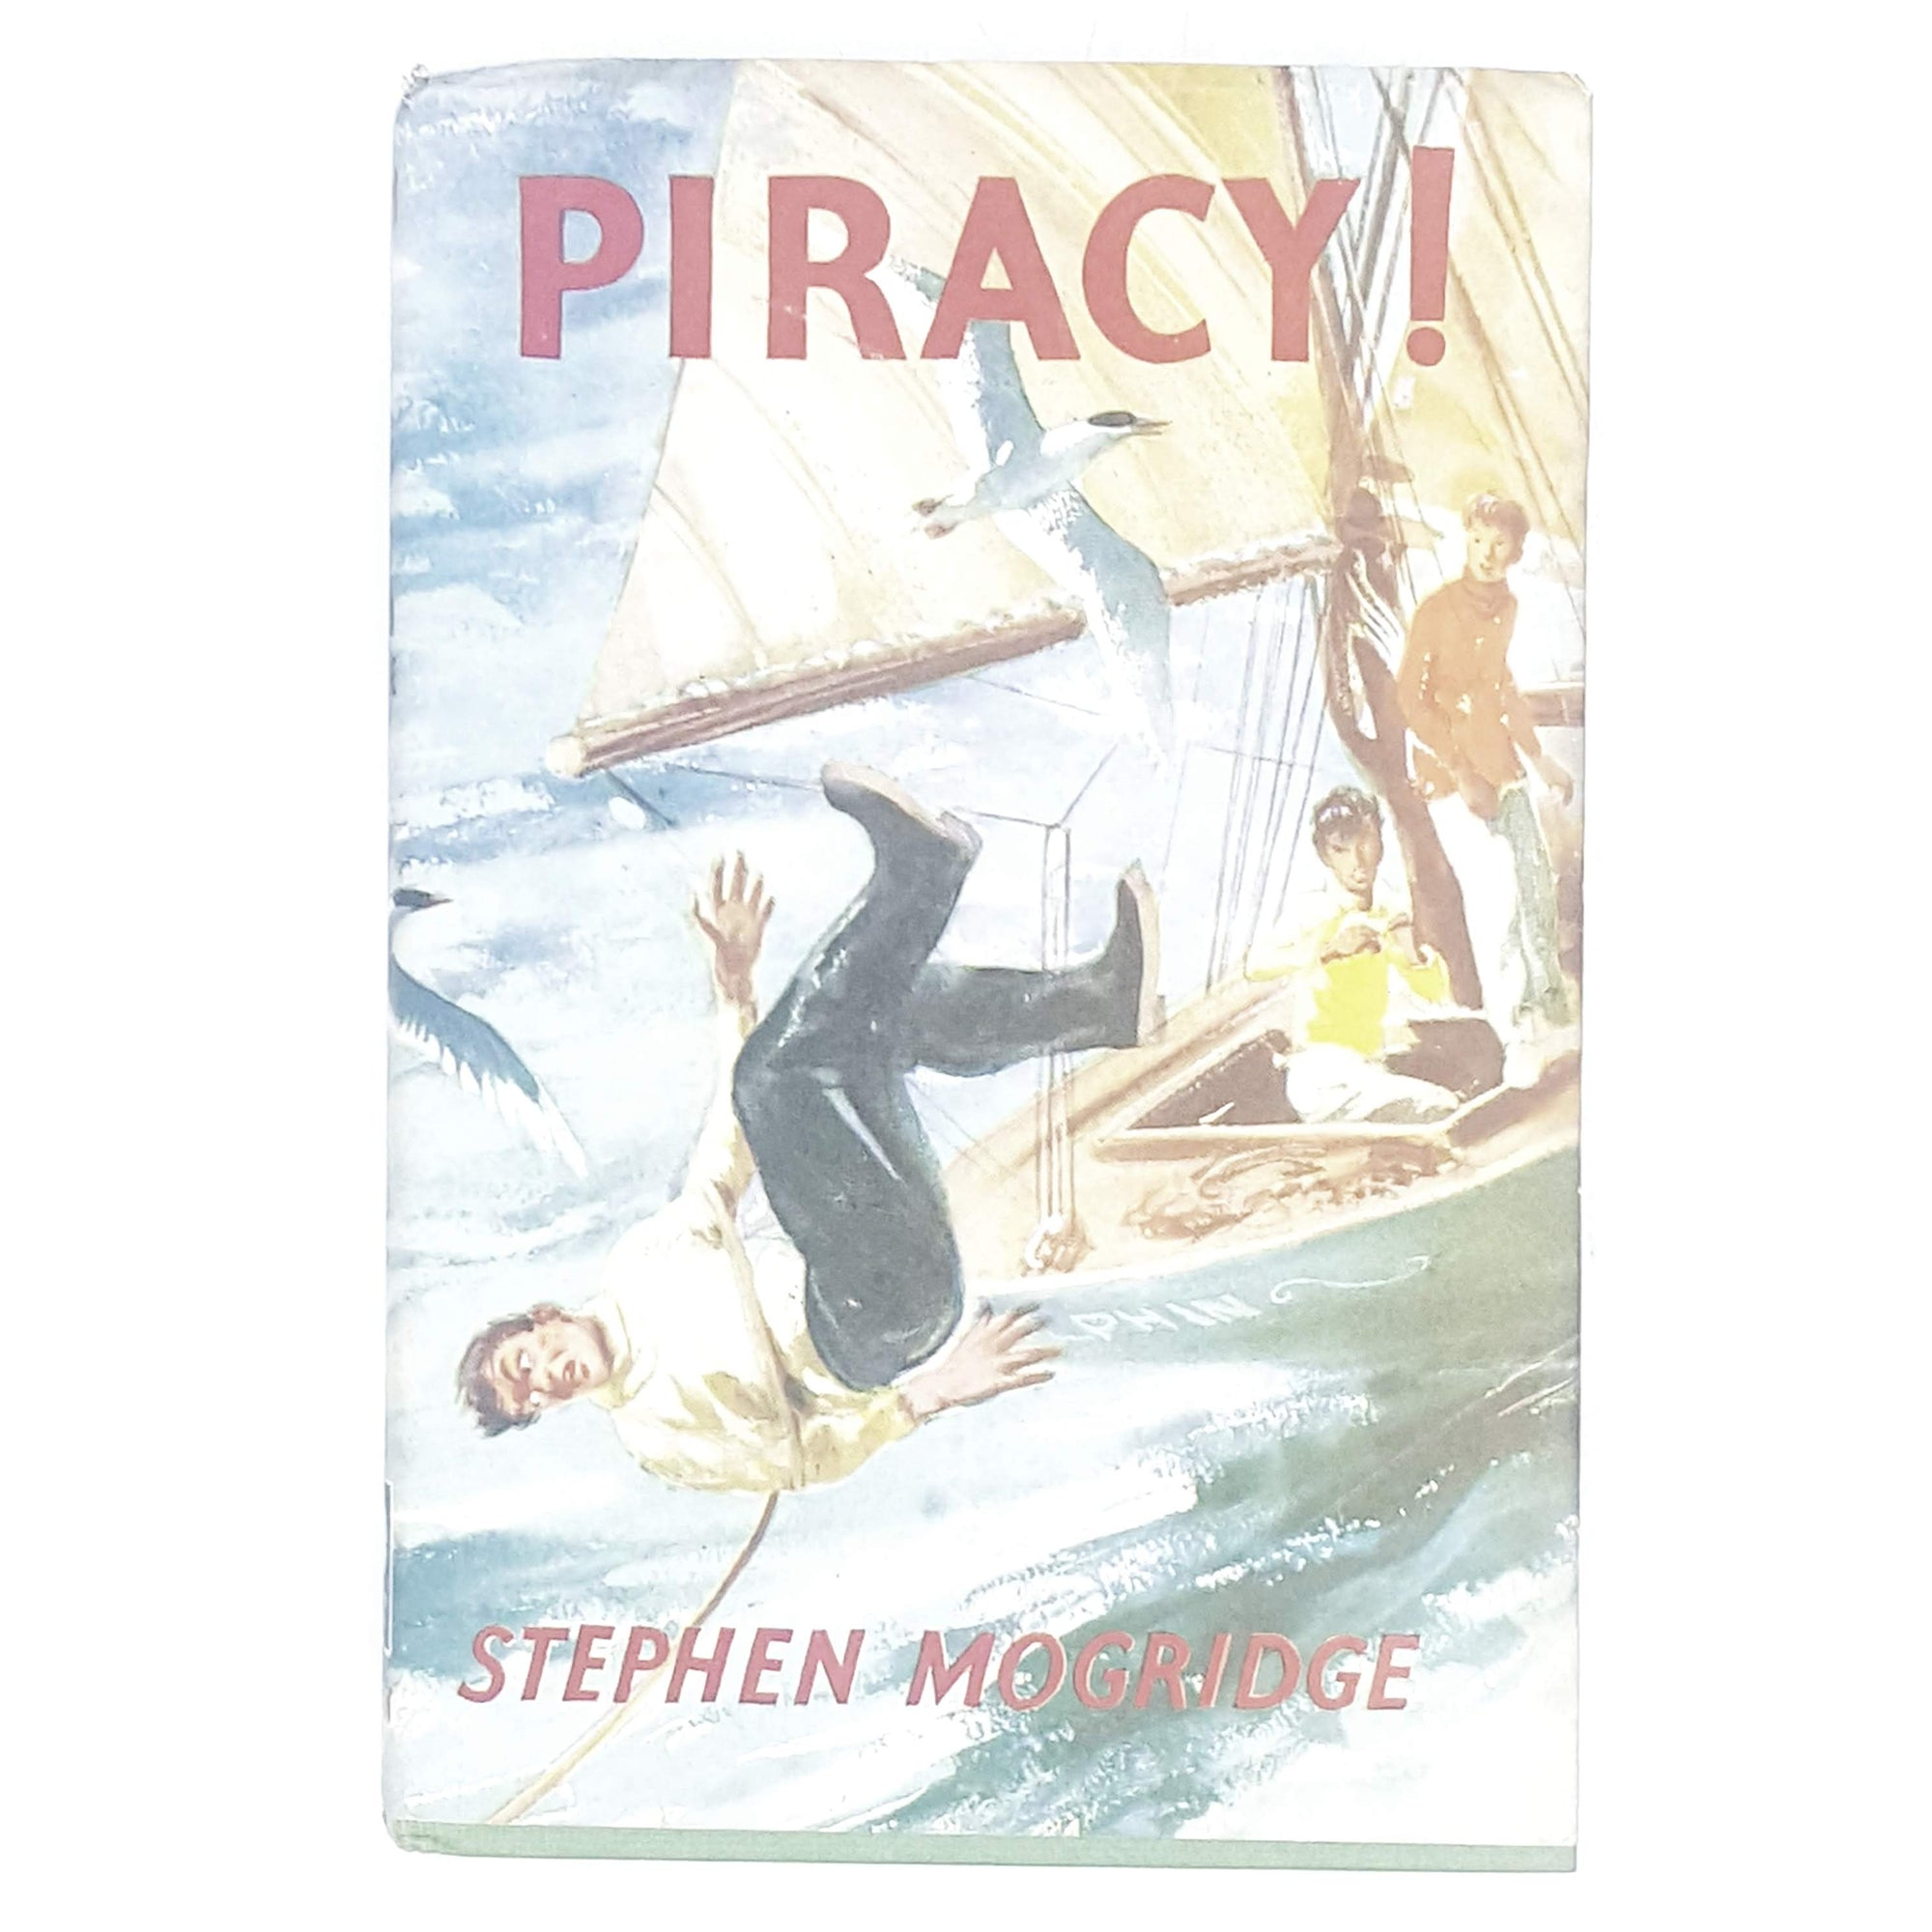 Piracy! by Stephen Mogridge 1961